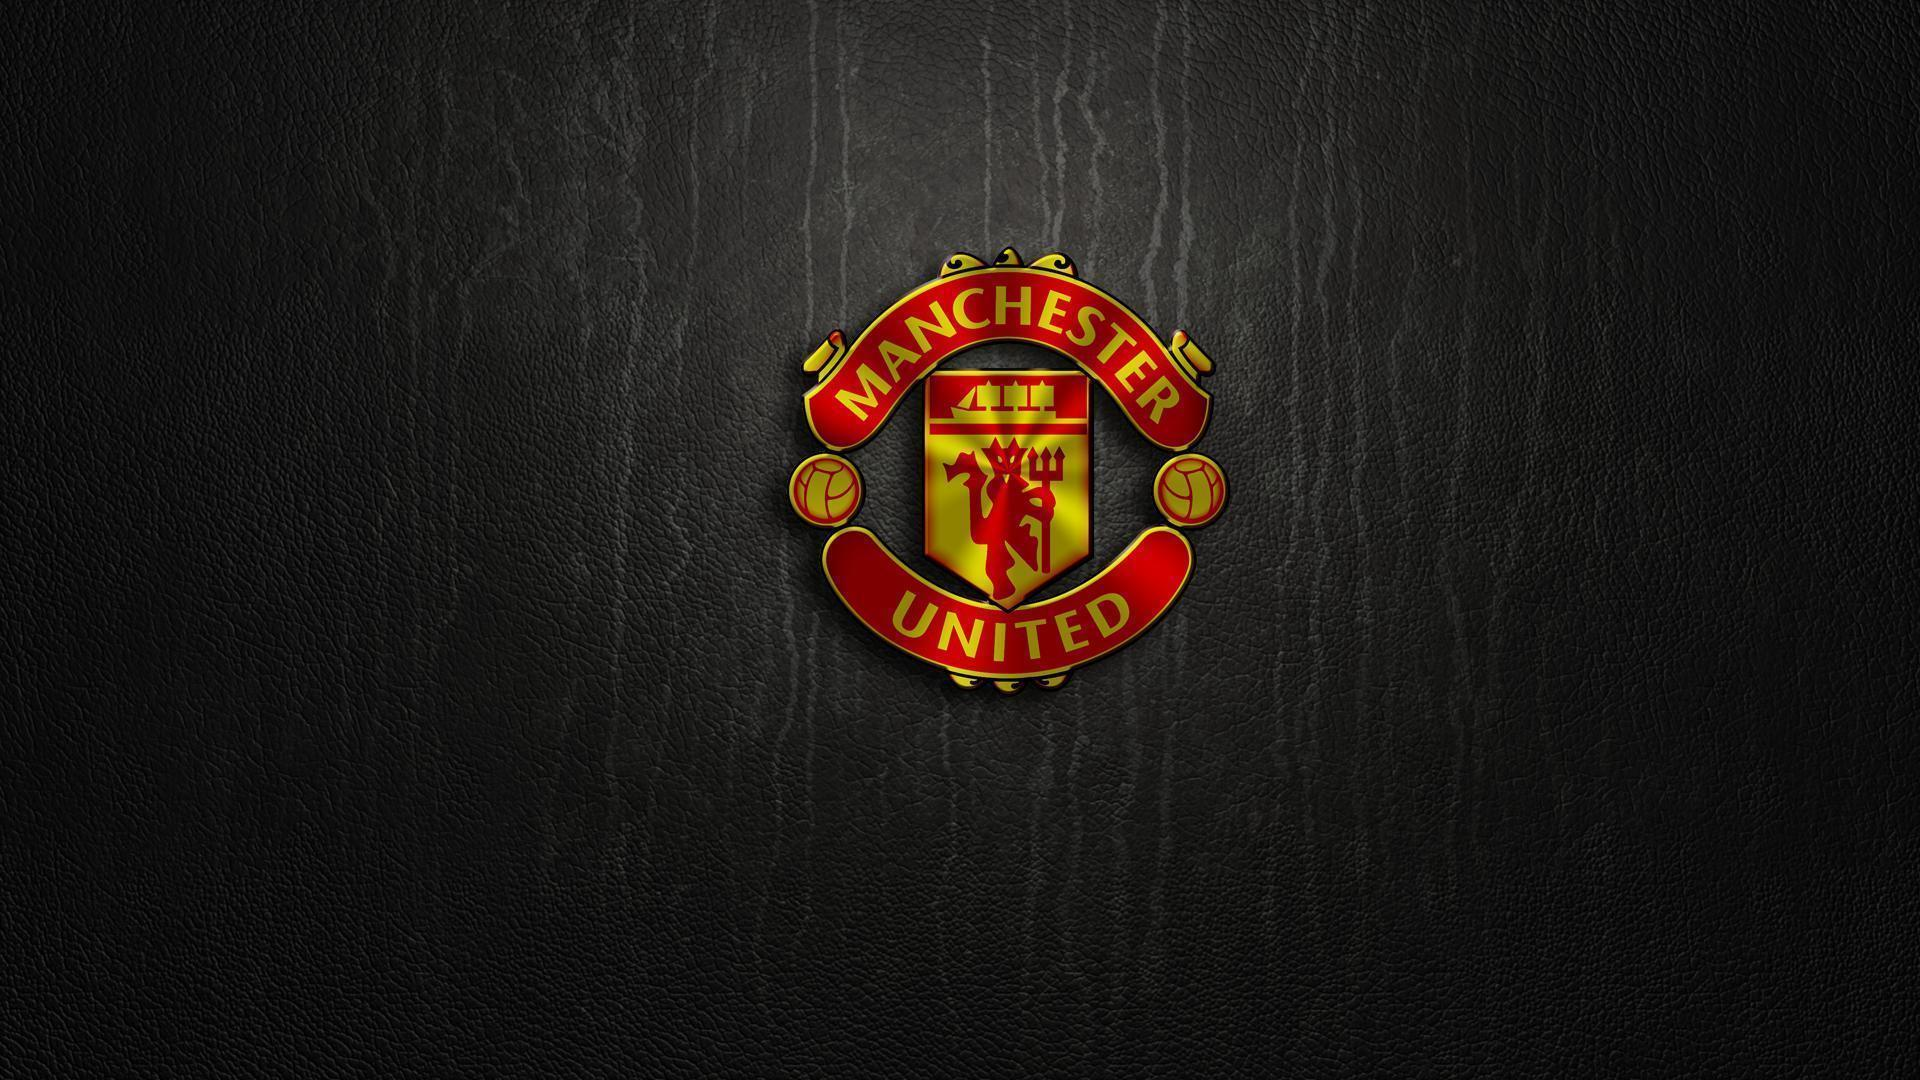 Manchester United Logo High Quality Photo Desktop Backgrounds Free